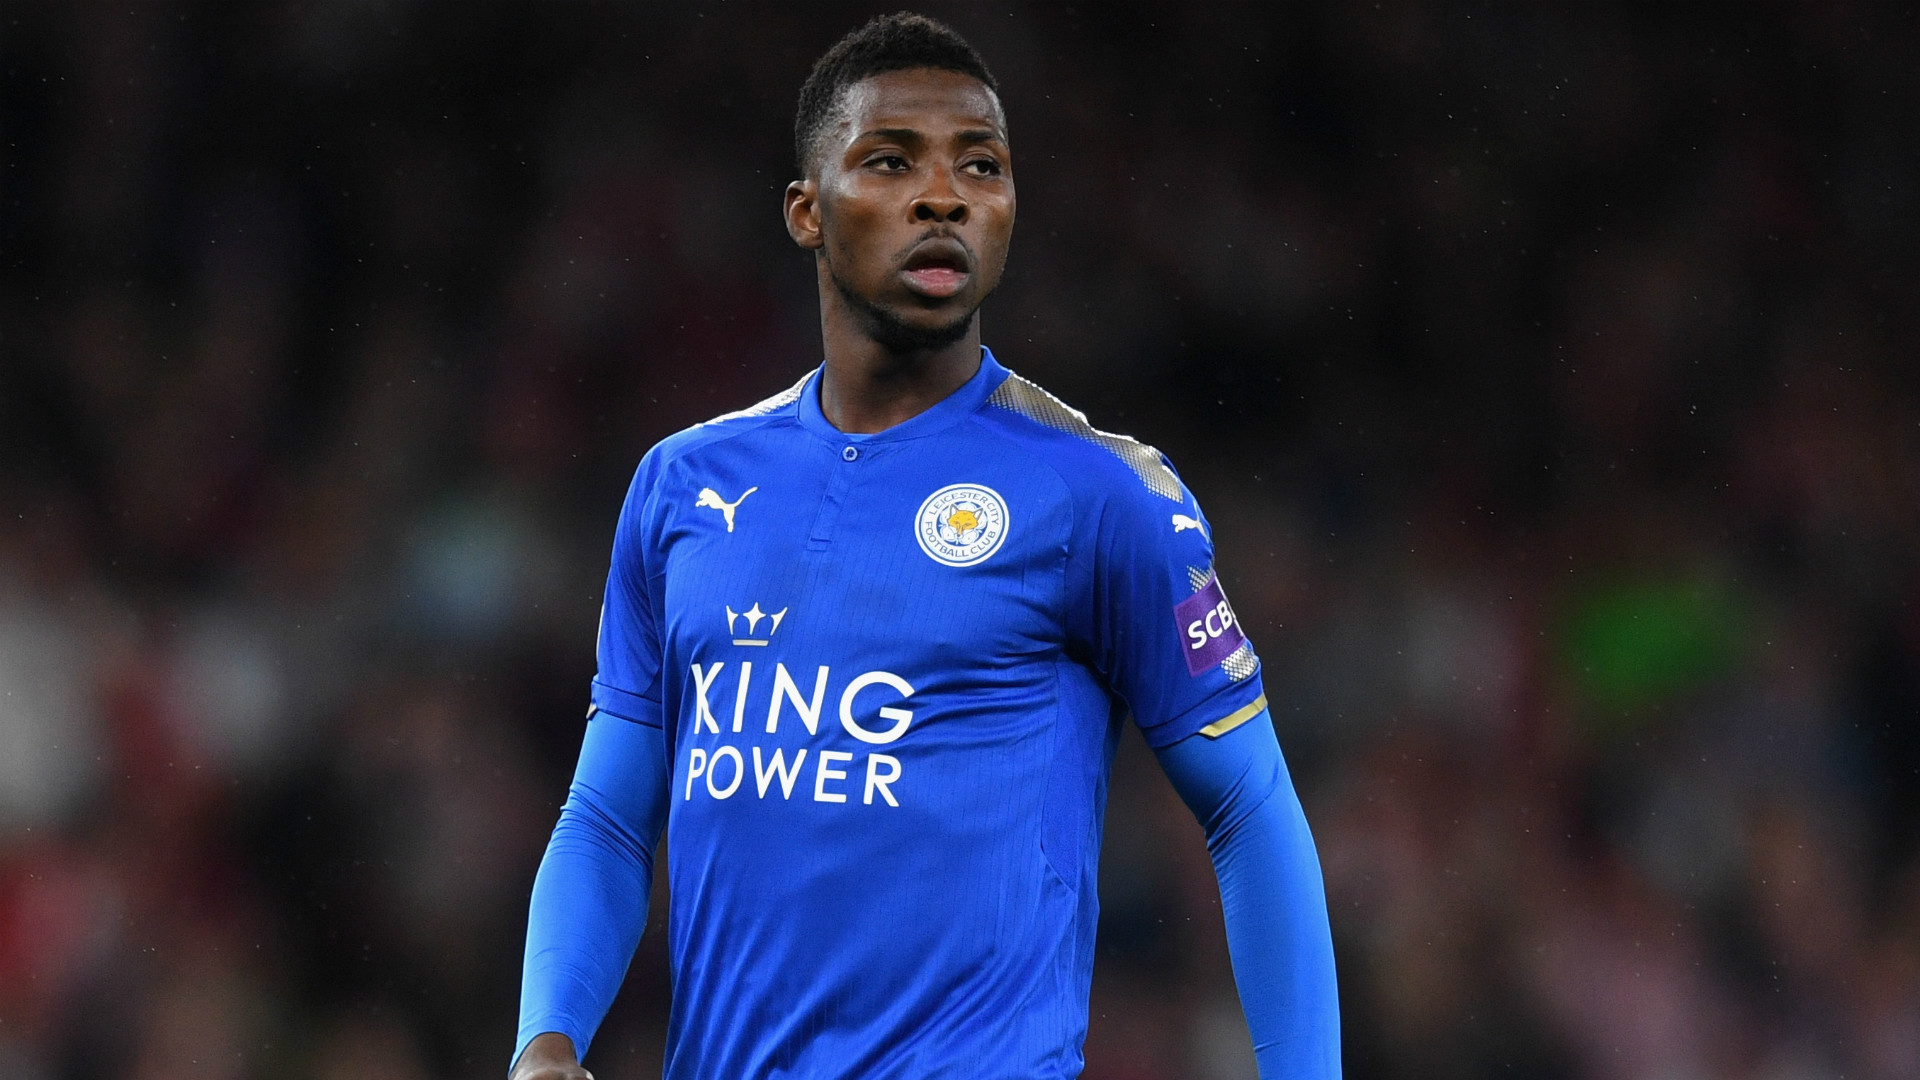 Puel backs struggling striker Iheanacho to make 10th Carabao Cup start